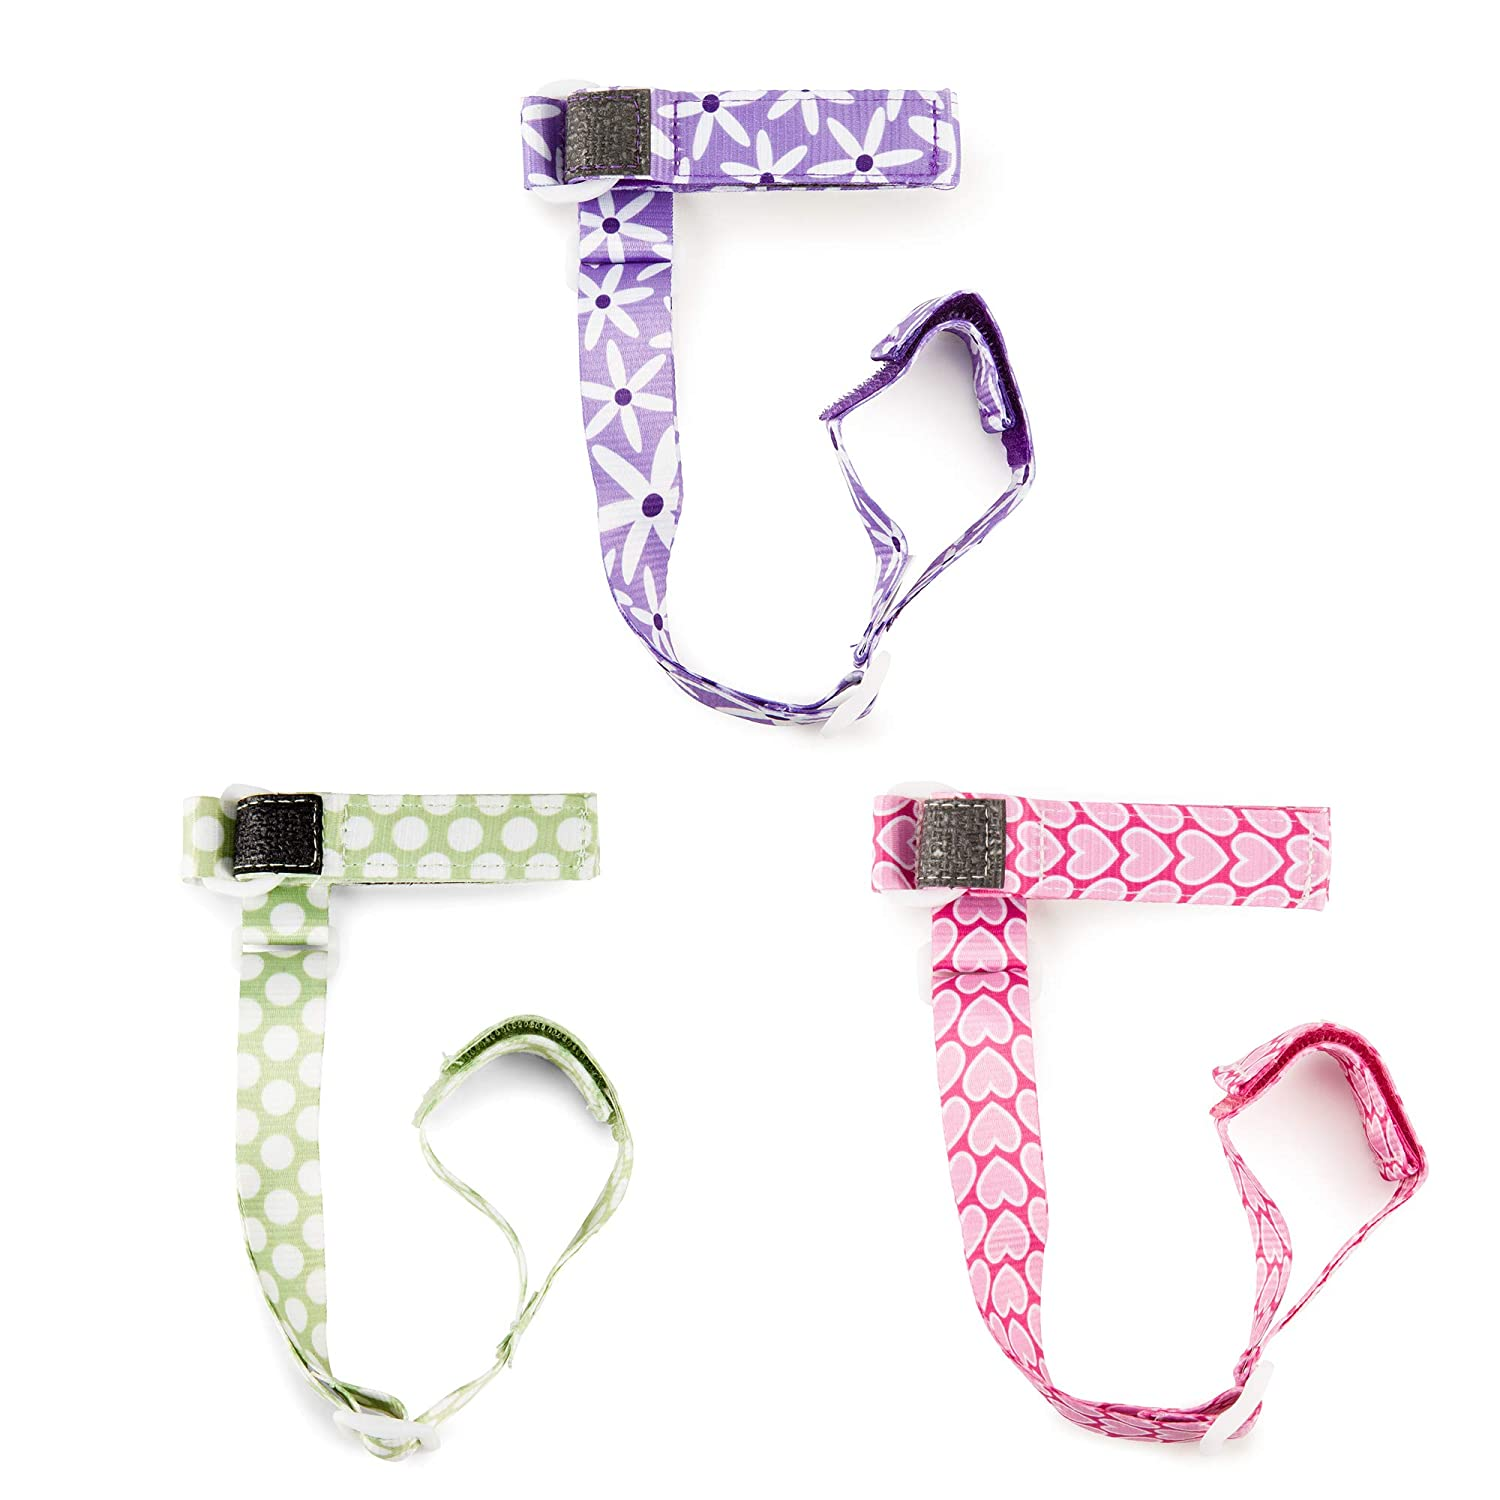 BooginHead Baby Toddler SippiGrip Sippy Cup Holder Strap, Polka Dots Green, Purple Daisy, Pink Heart (Pack of 3)